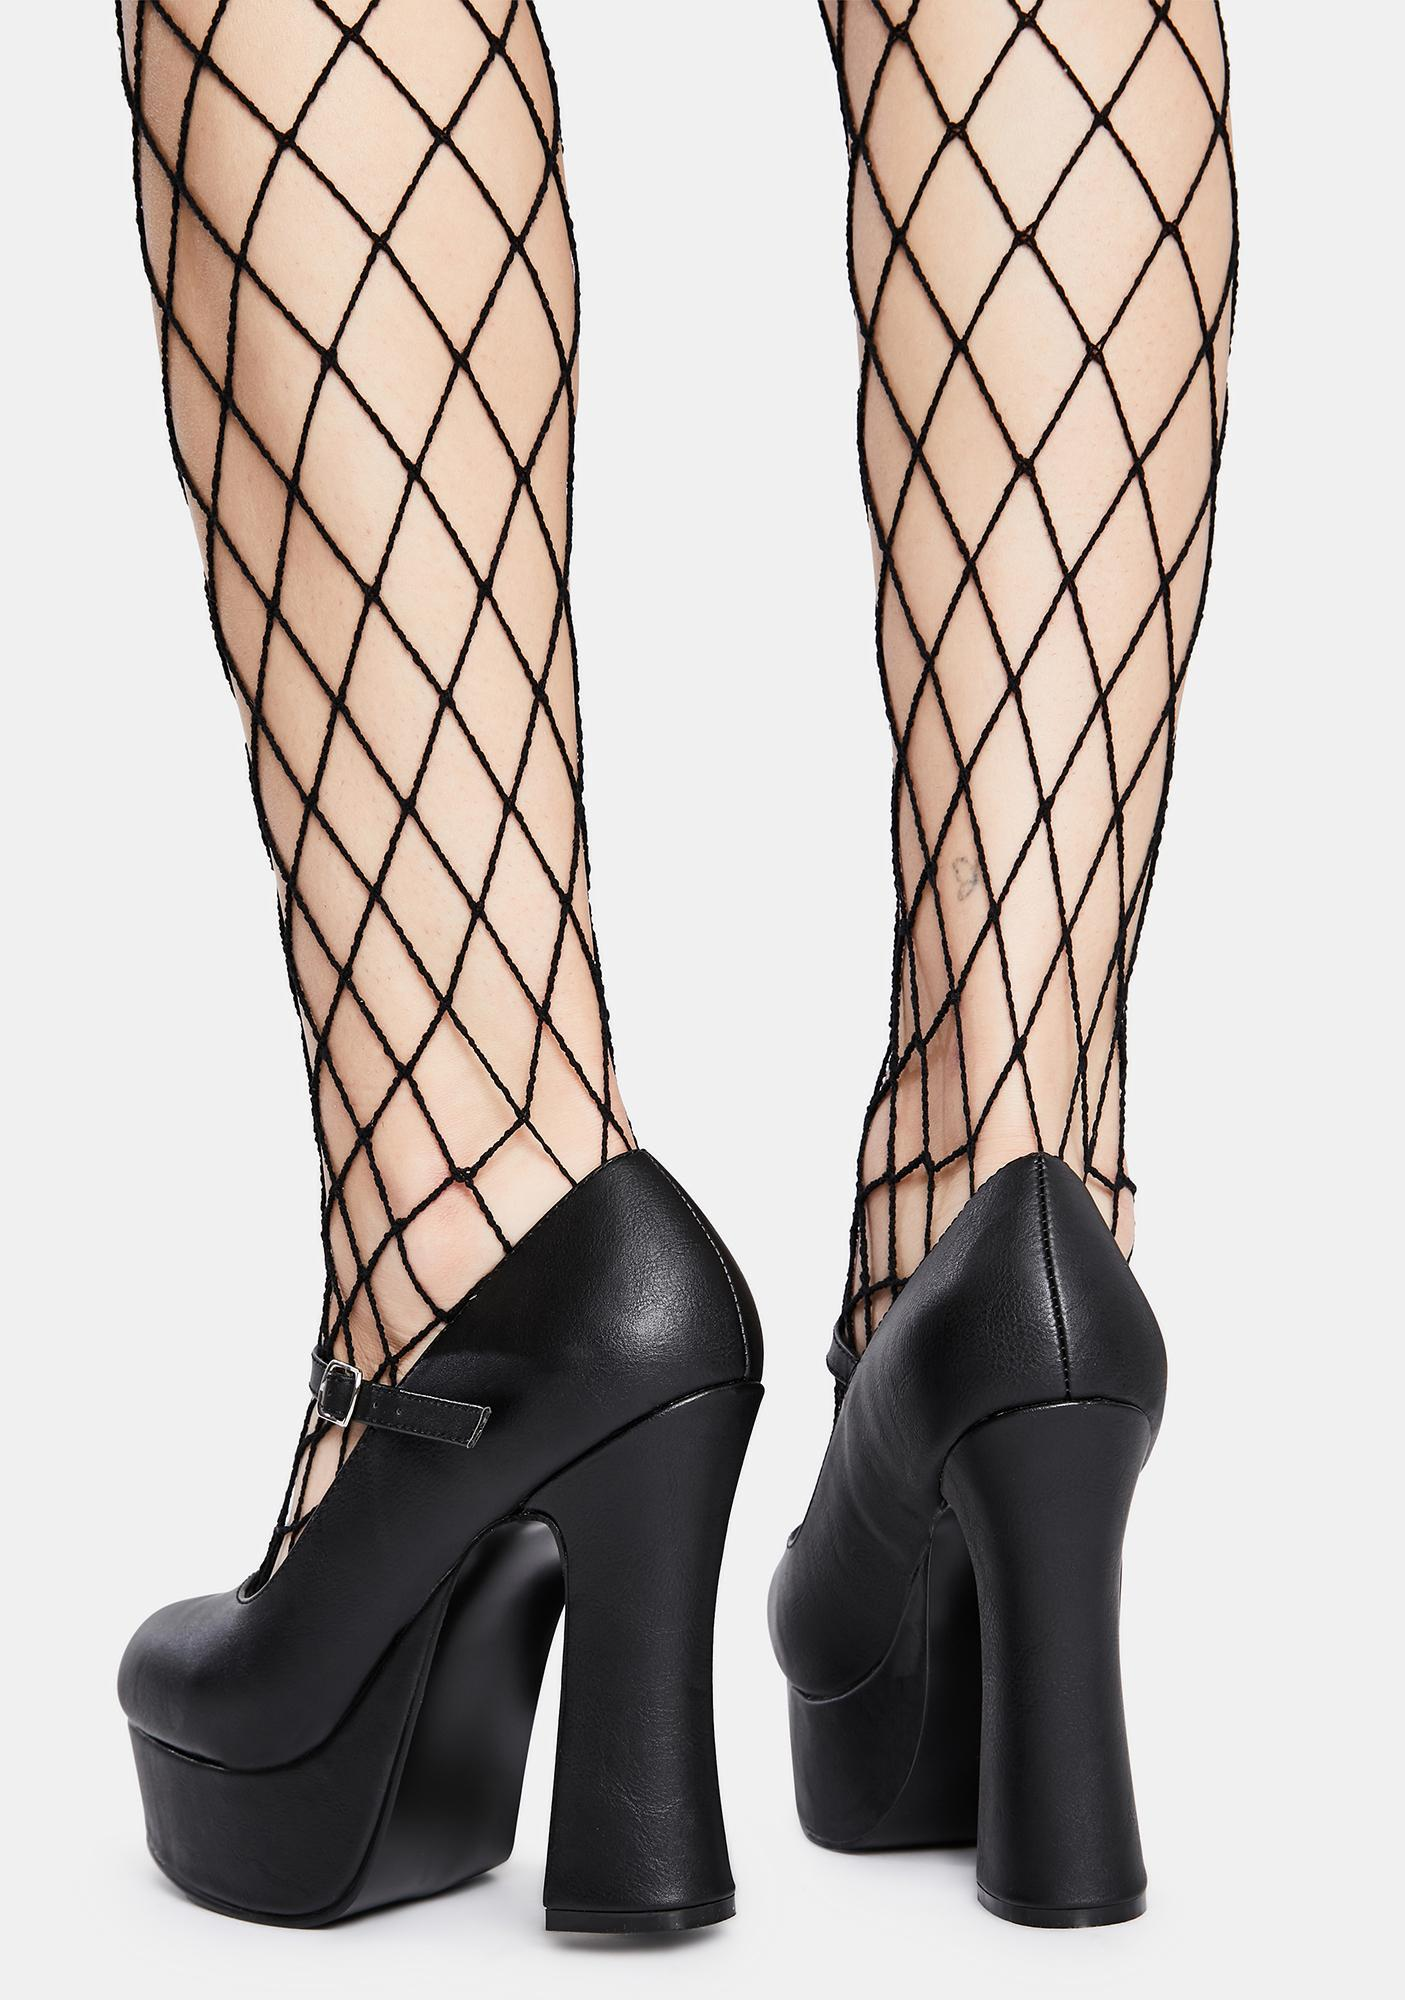 Demonia Dolly Platform Heels